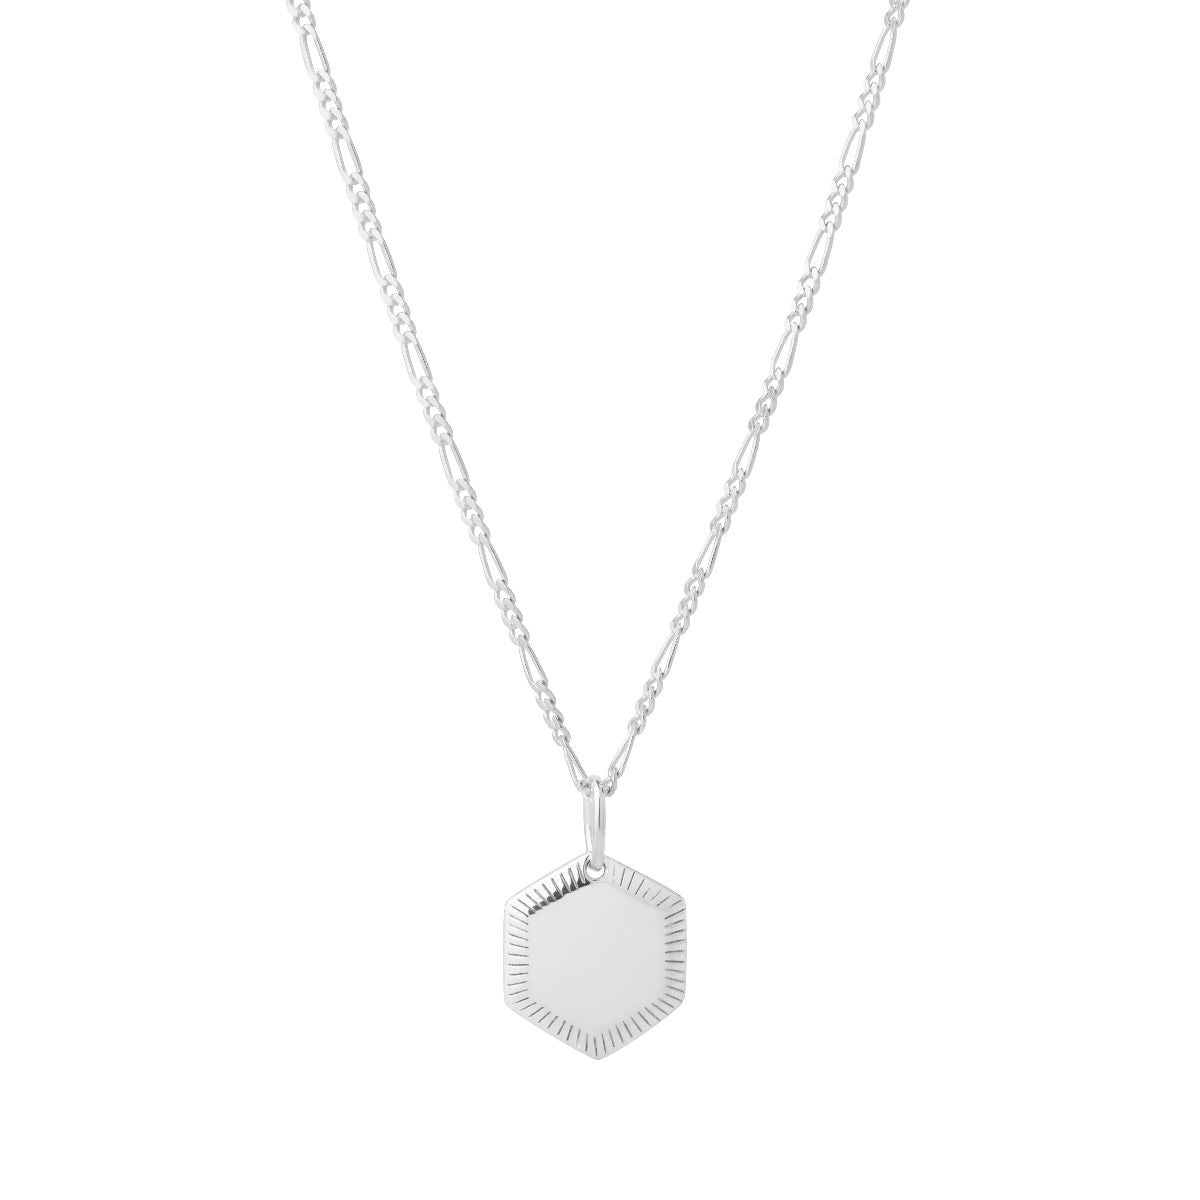 Kim Necklace - silver